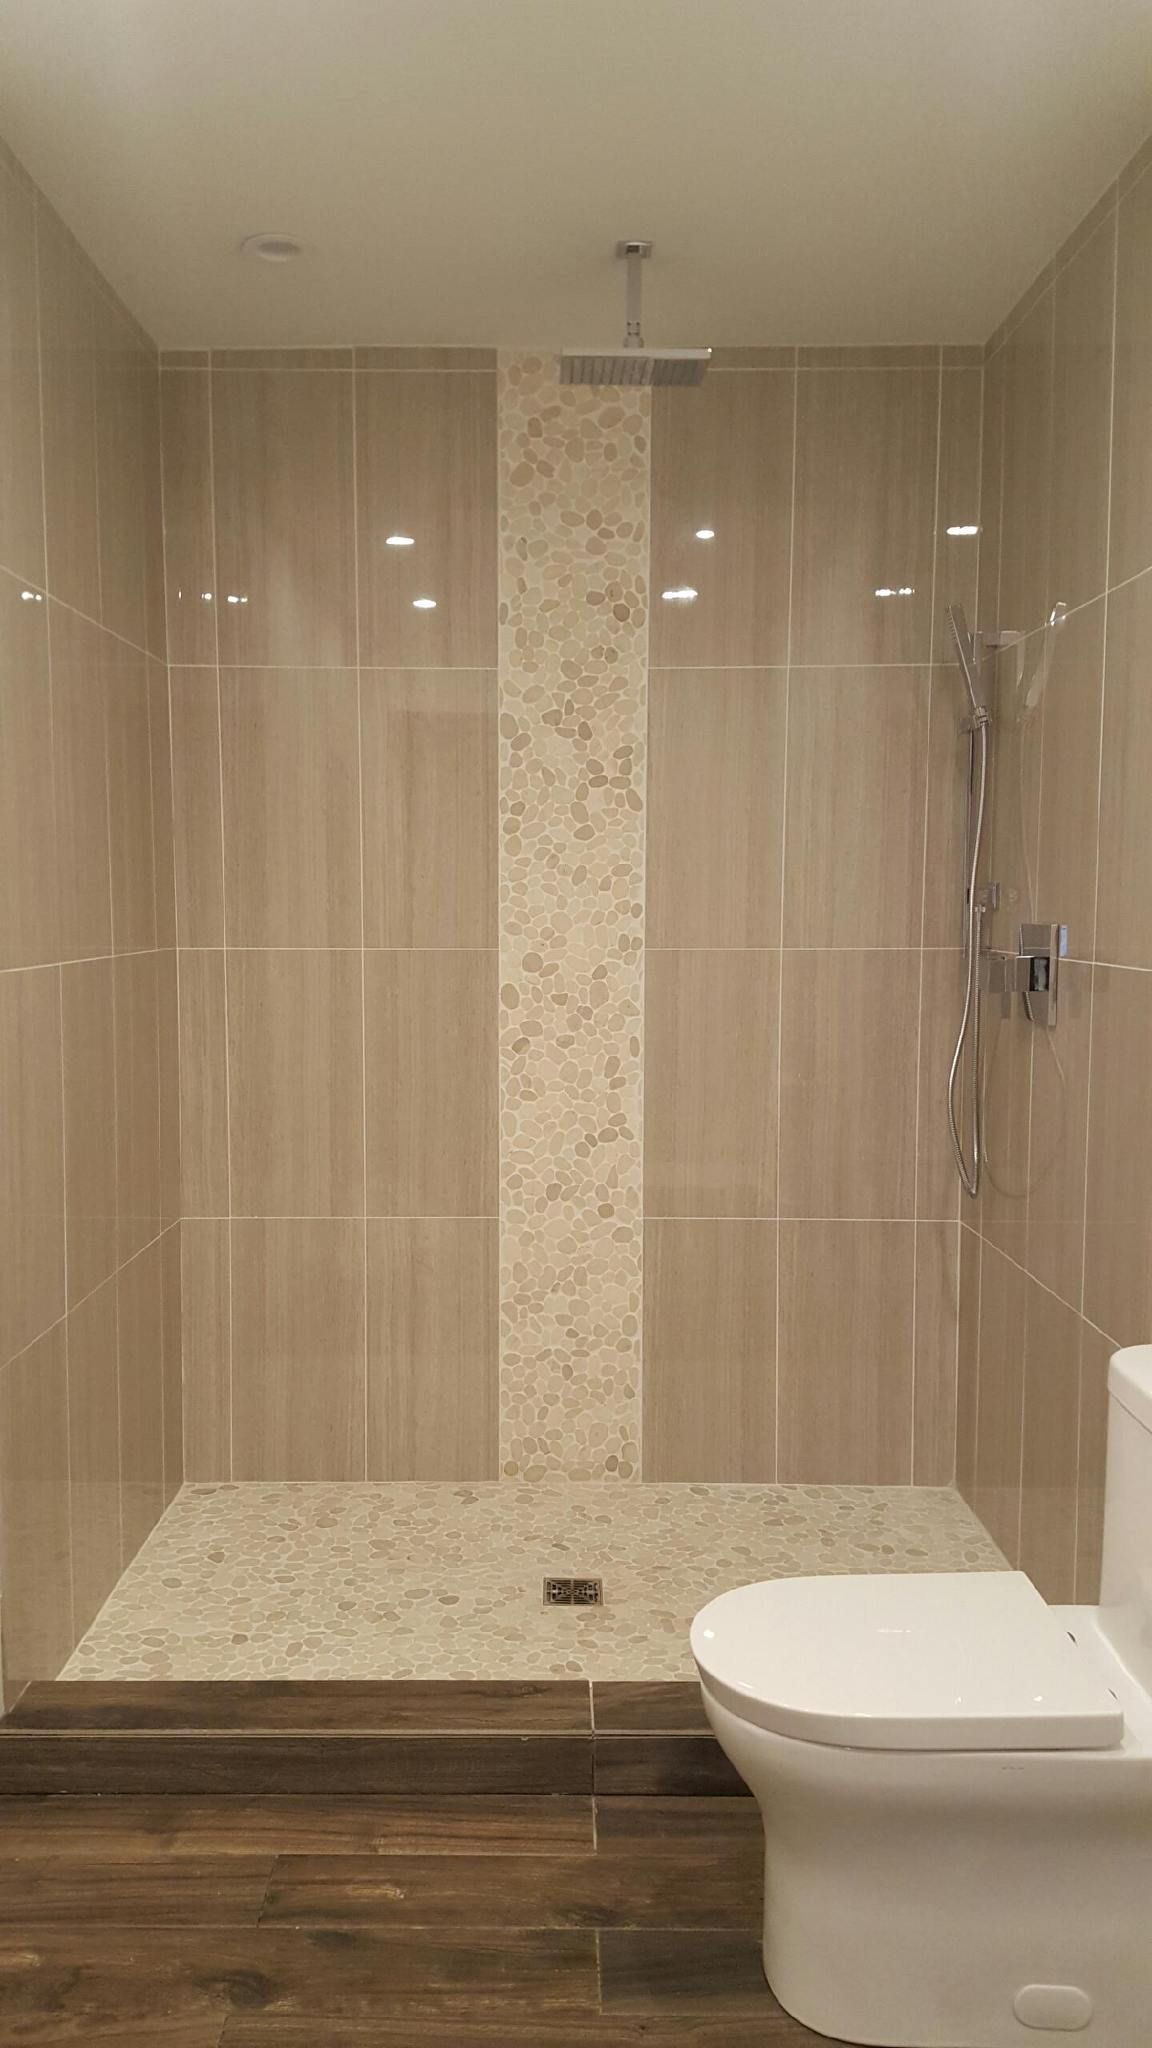 Sliced White Pebble Tile | Bathroom | Pinterest | Bathroom ...